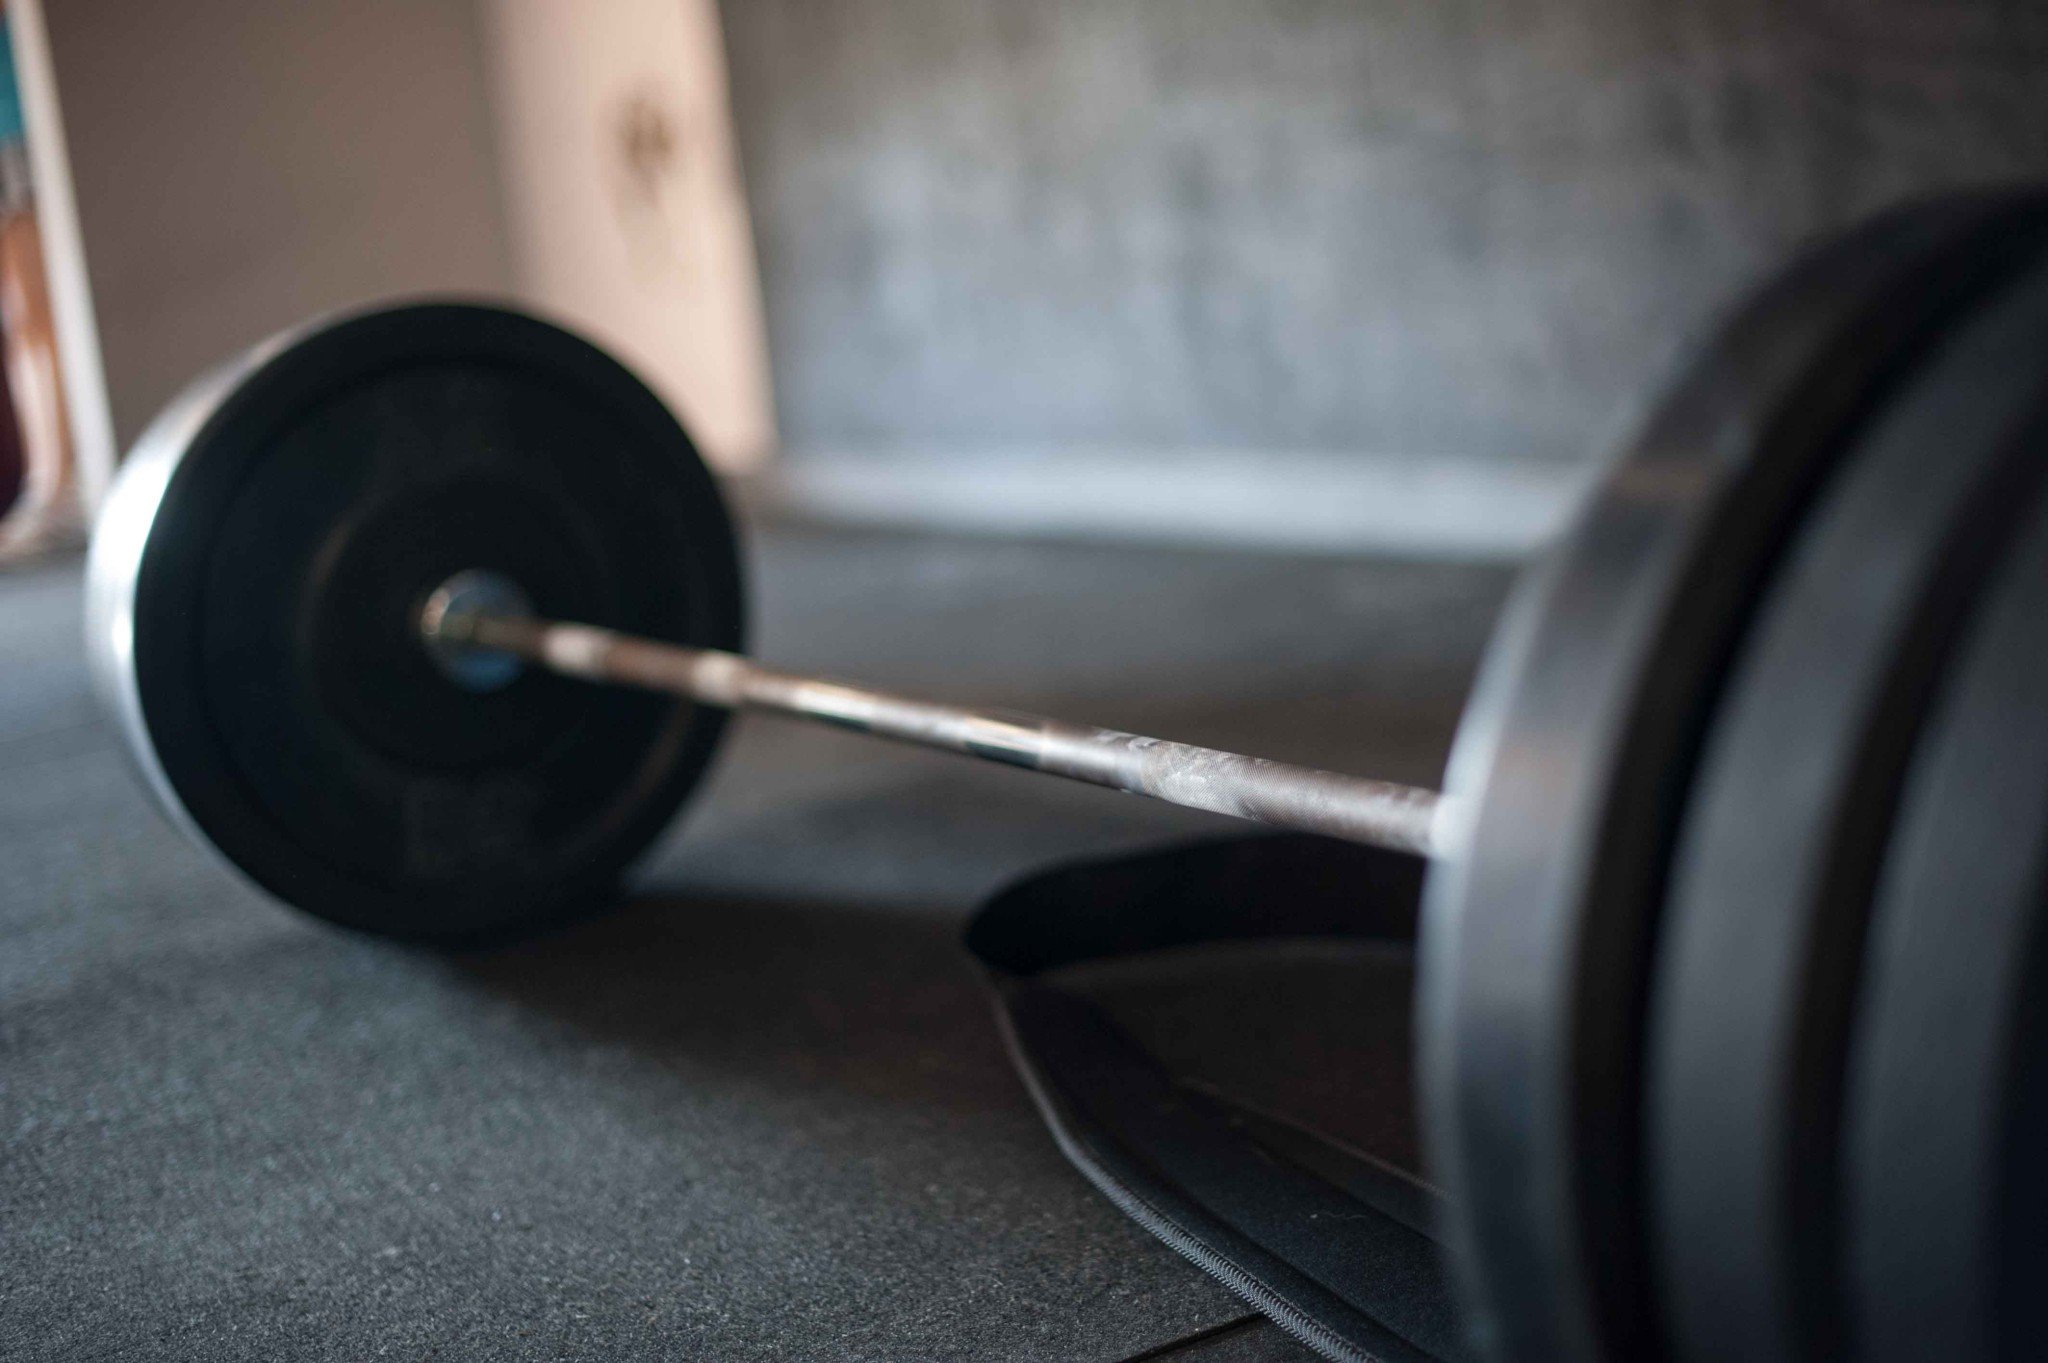 barbell photography - photo #7